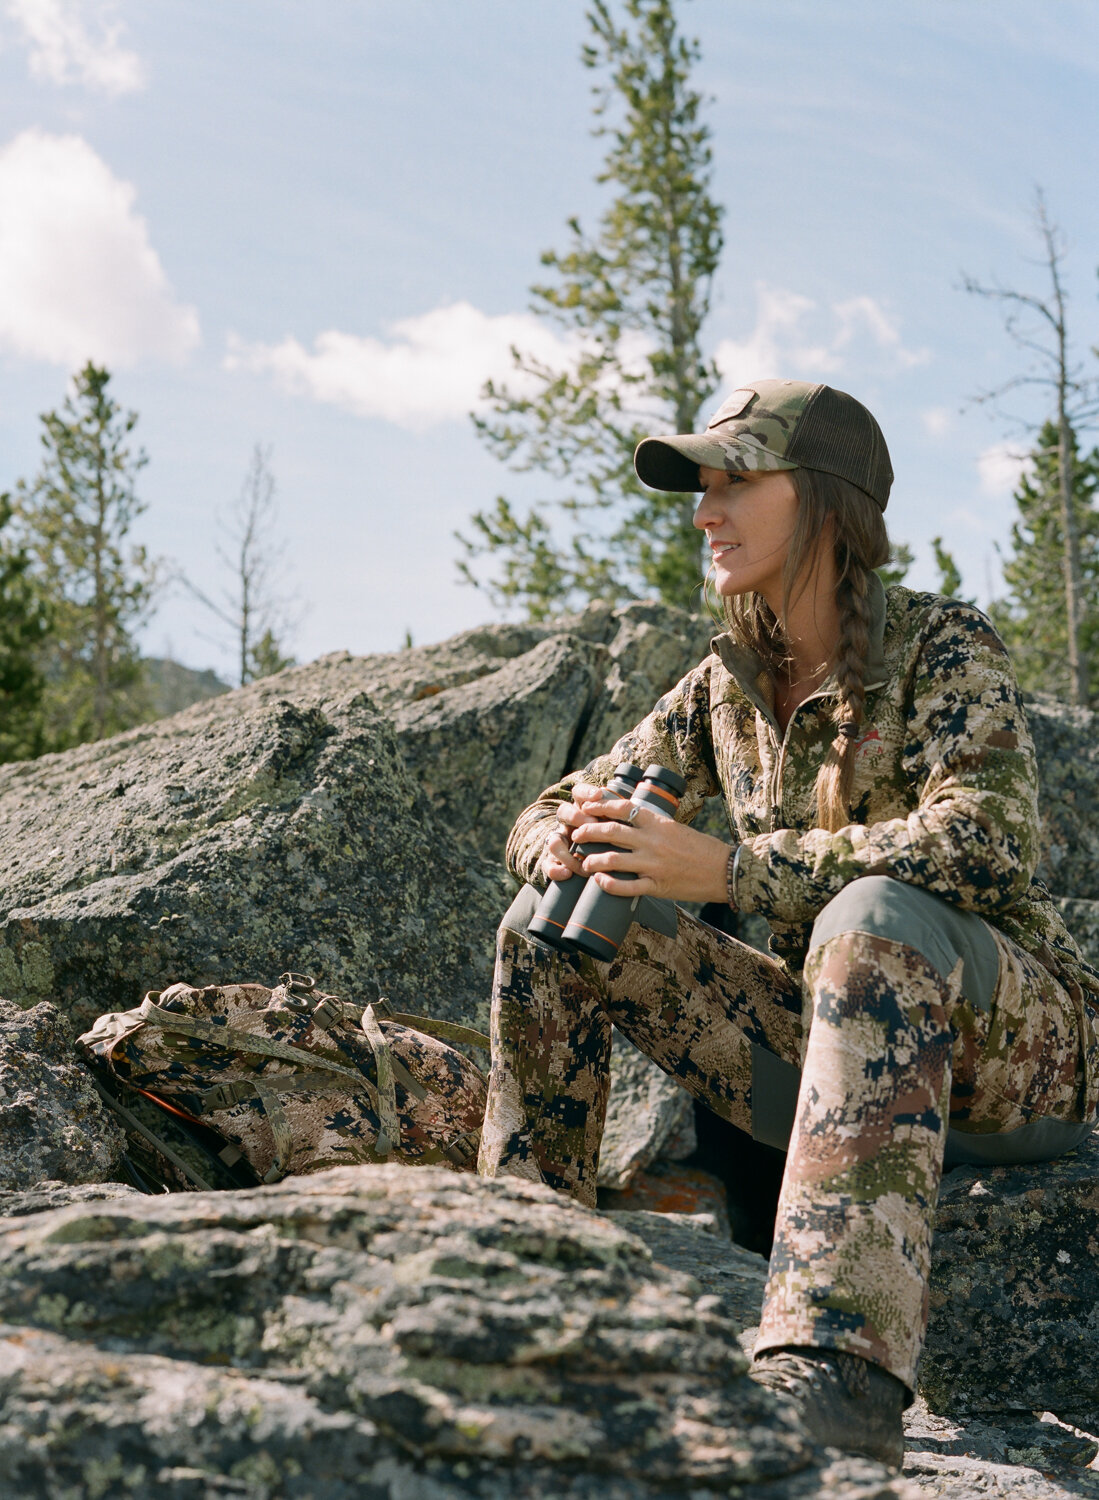 In the fall, Jessie guides archery and rifle hunters.